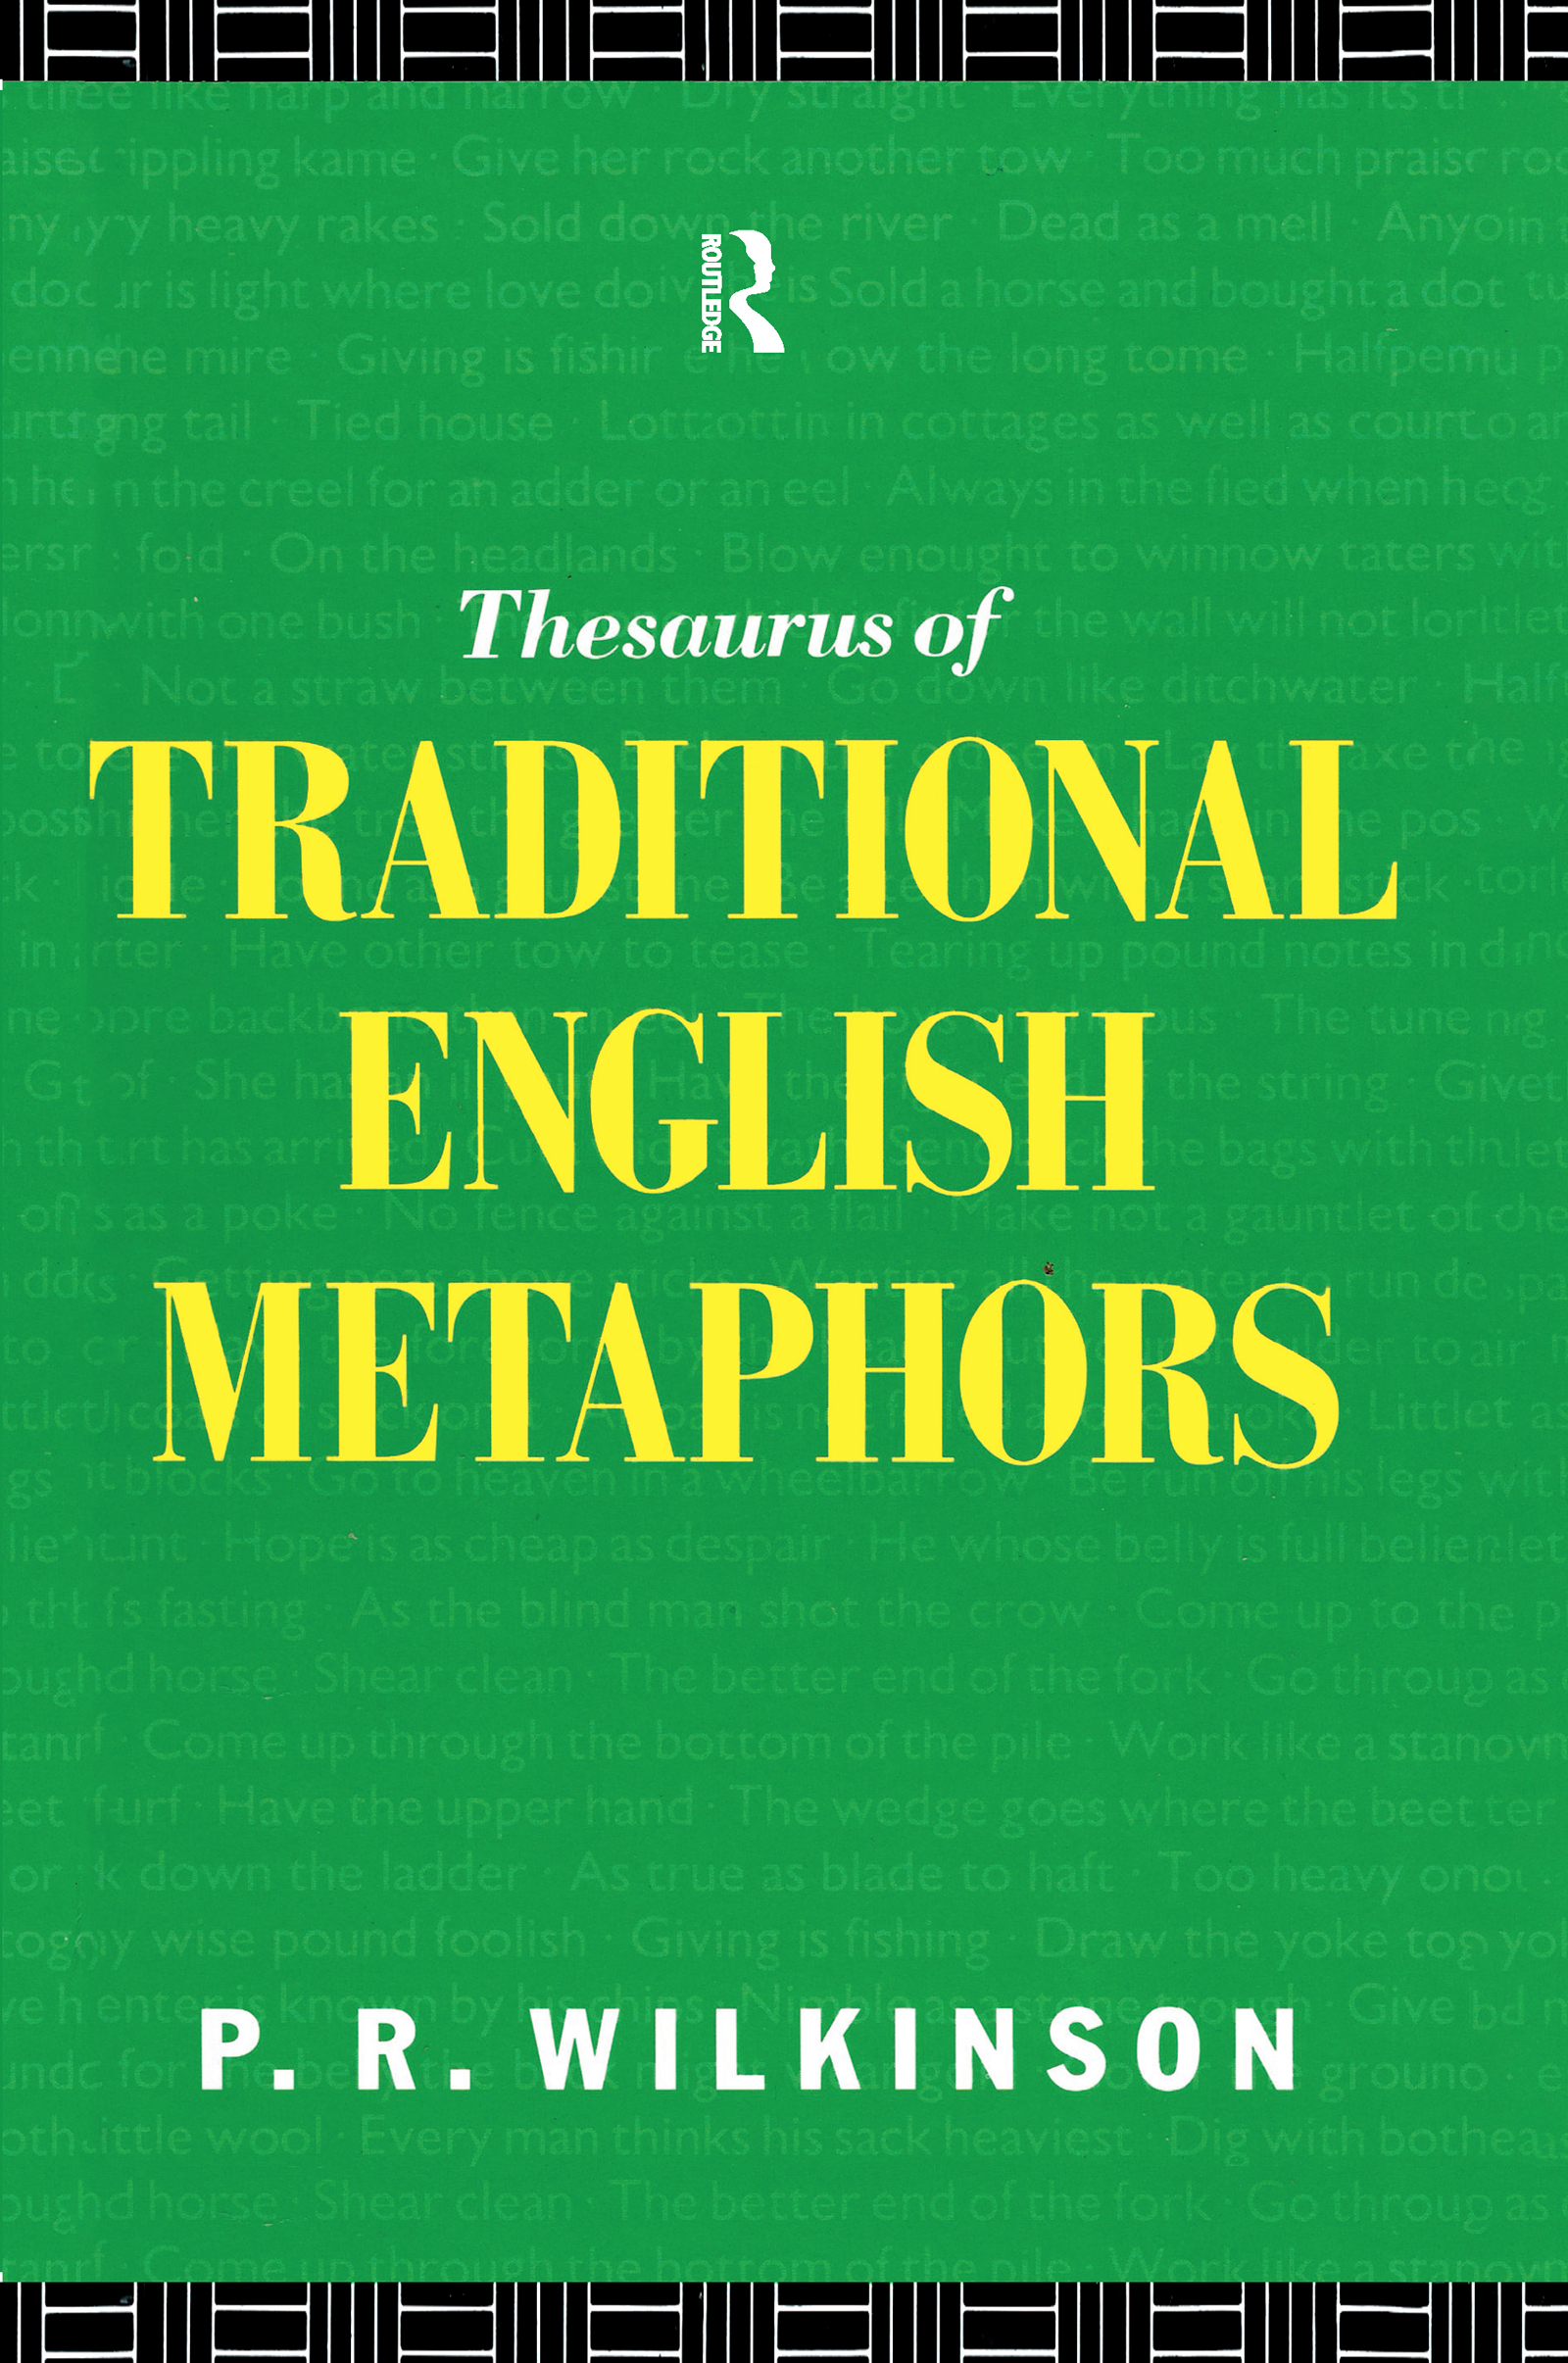 A Thesaurus of Traditional English Metaphors